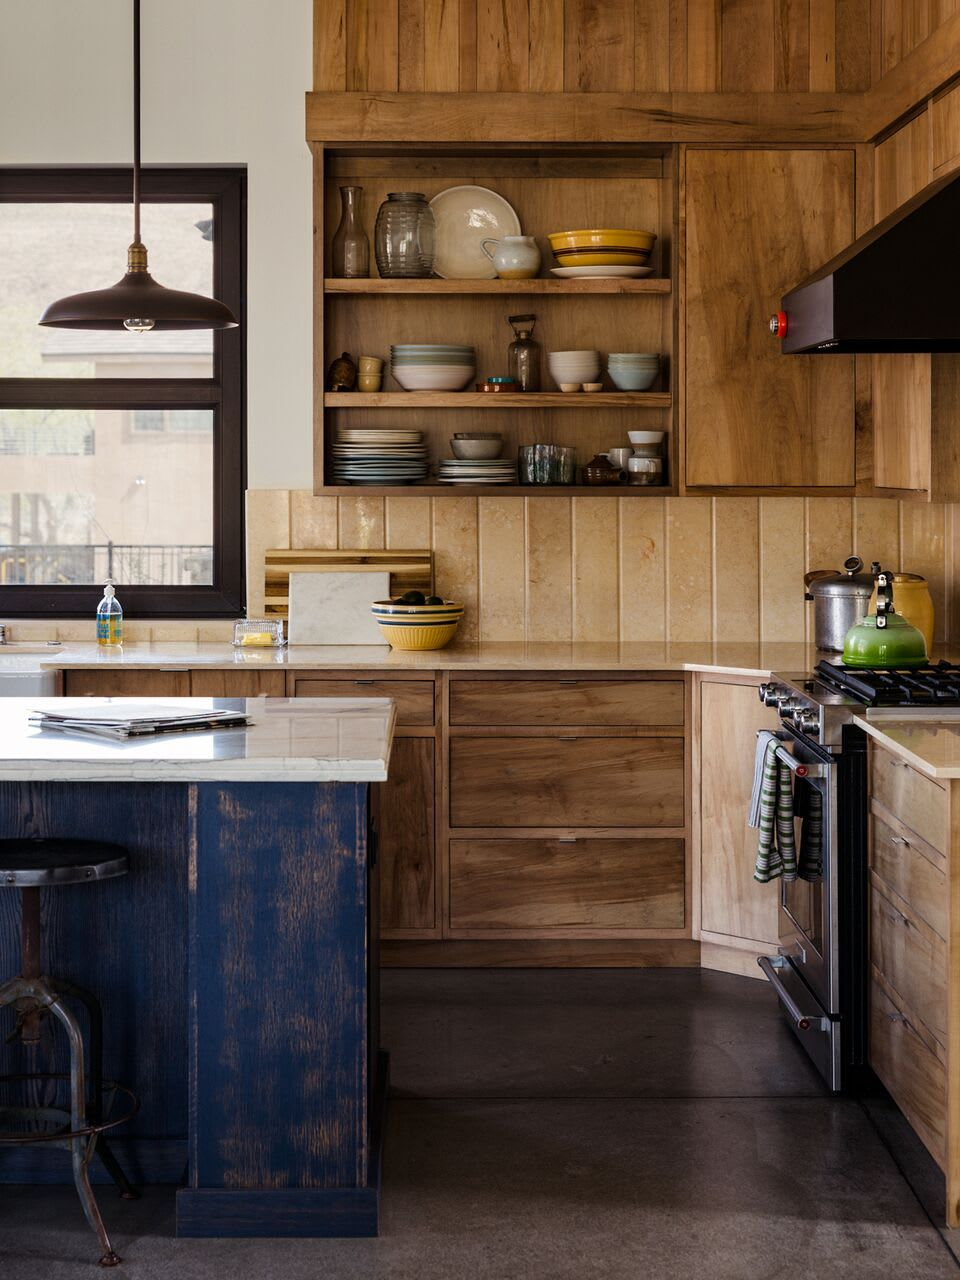 Different Kitchen Styles And Designs By Personality Type Rustic